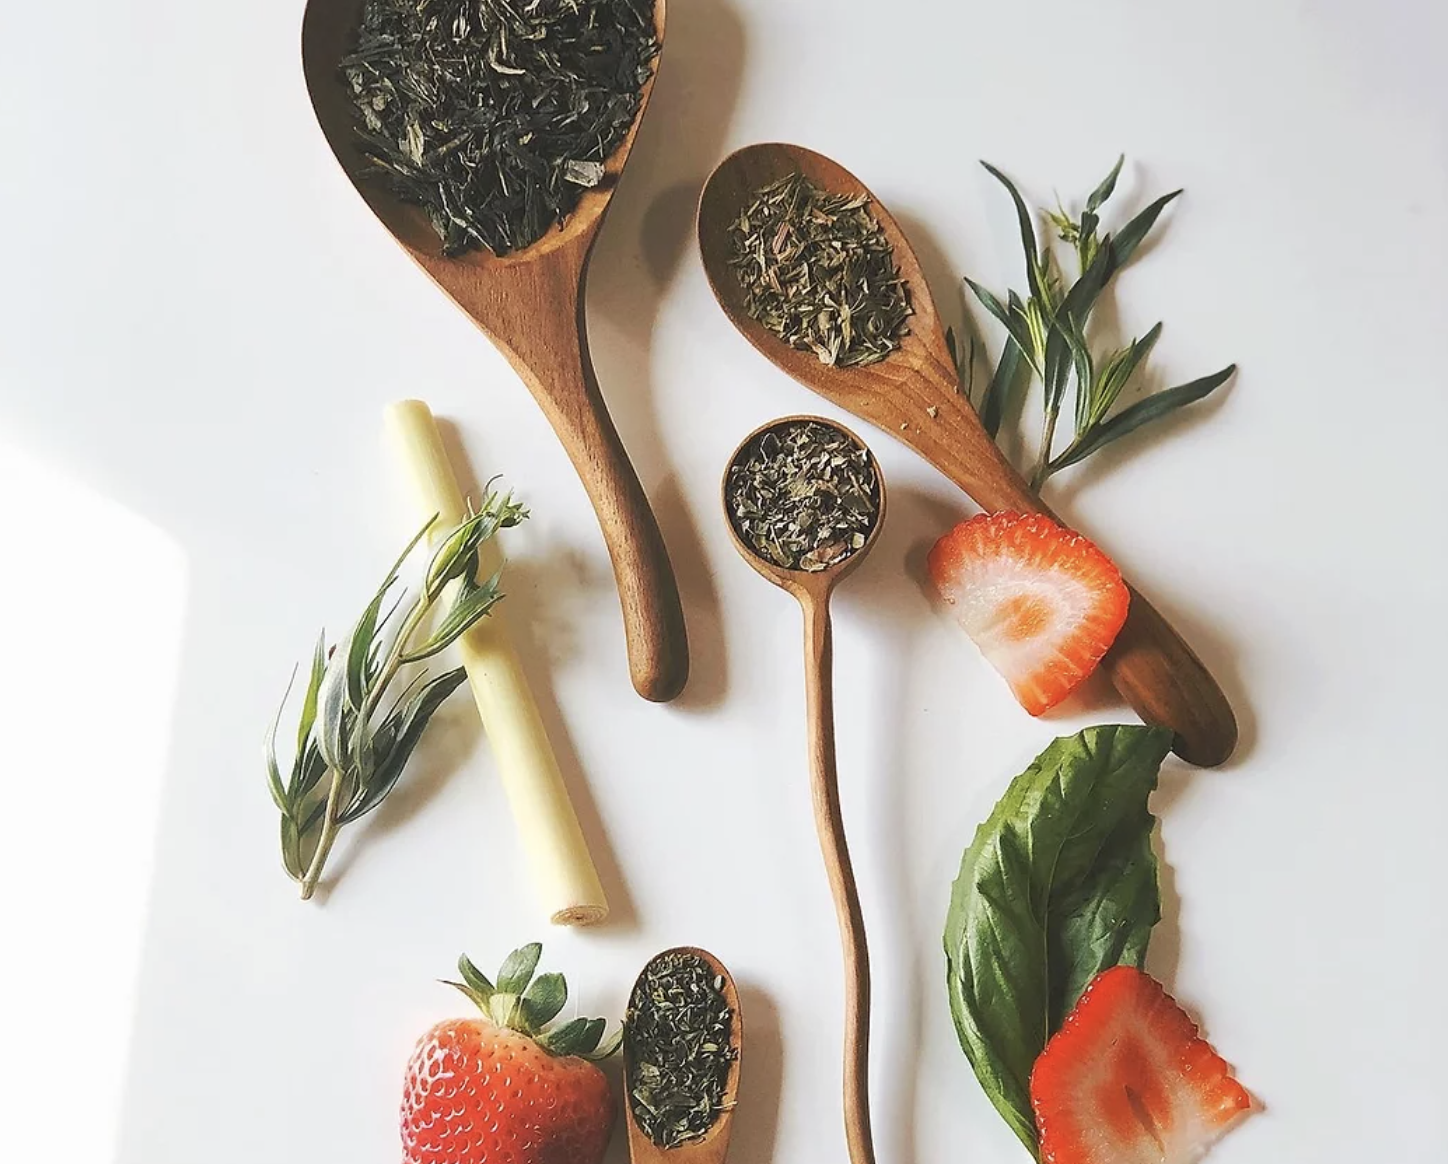 wooden spoons holding the loose leaf tea with strawberries surrounding them